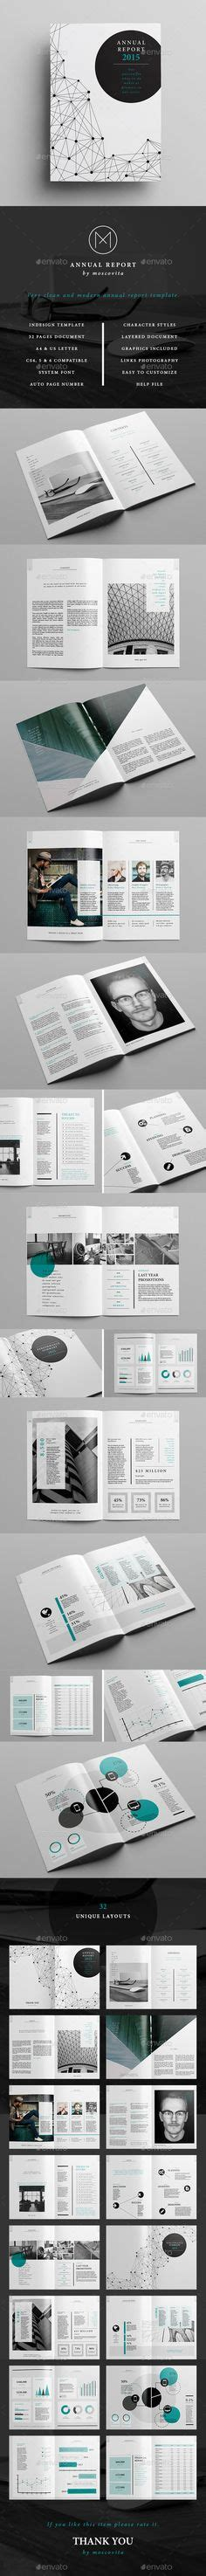 Https Graphicriver Net Item Divided Annual Report Template 13185075 Free Borders Clip Deacons Meeting Teaching